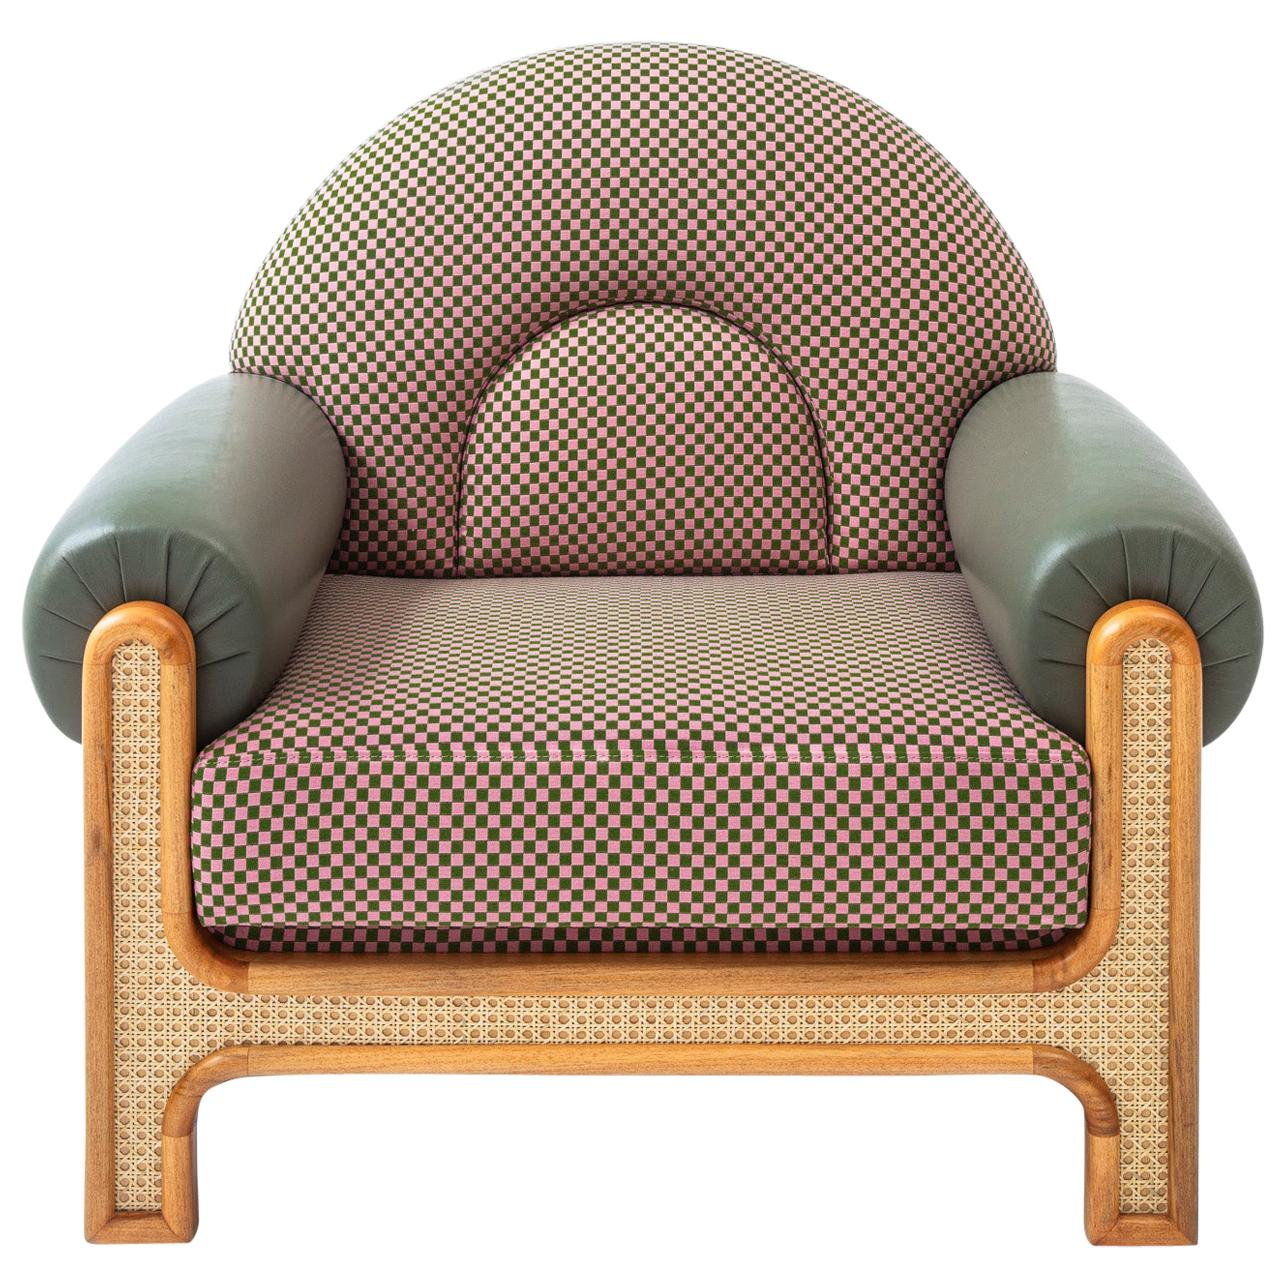 N-Gene Armchair with Cherry Checker Fabric and Olive Leather